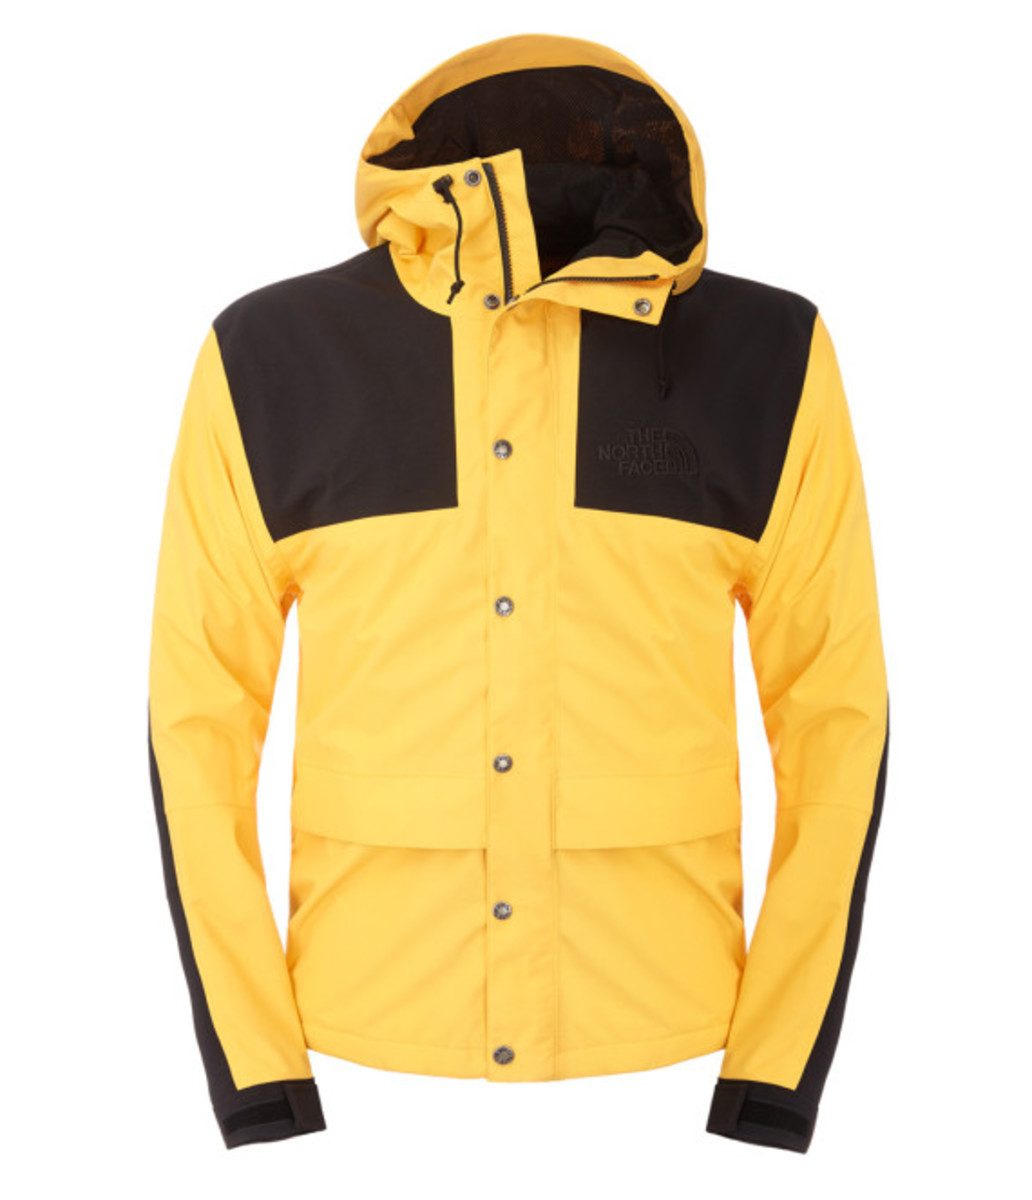 the-north-face-mountain-jacket-06